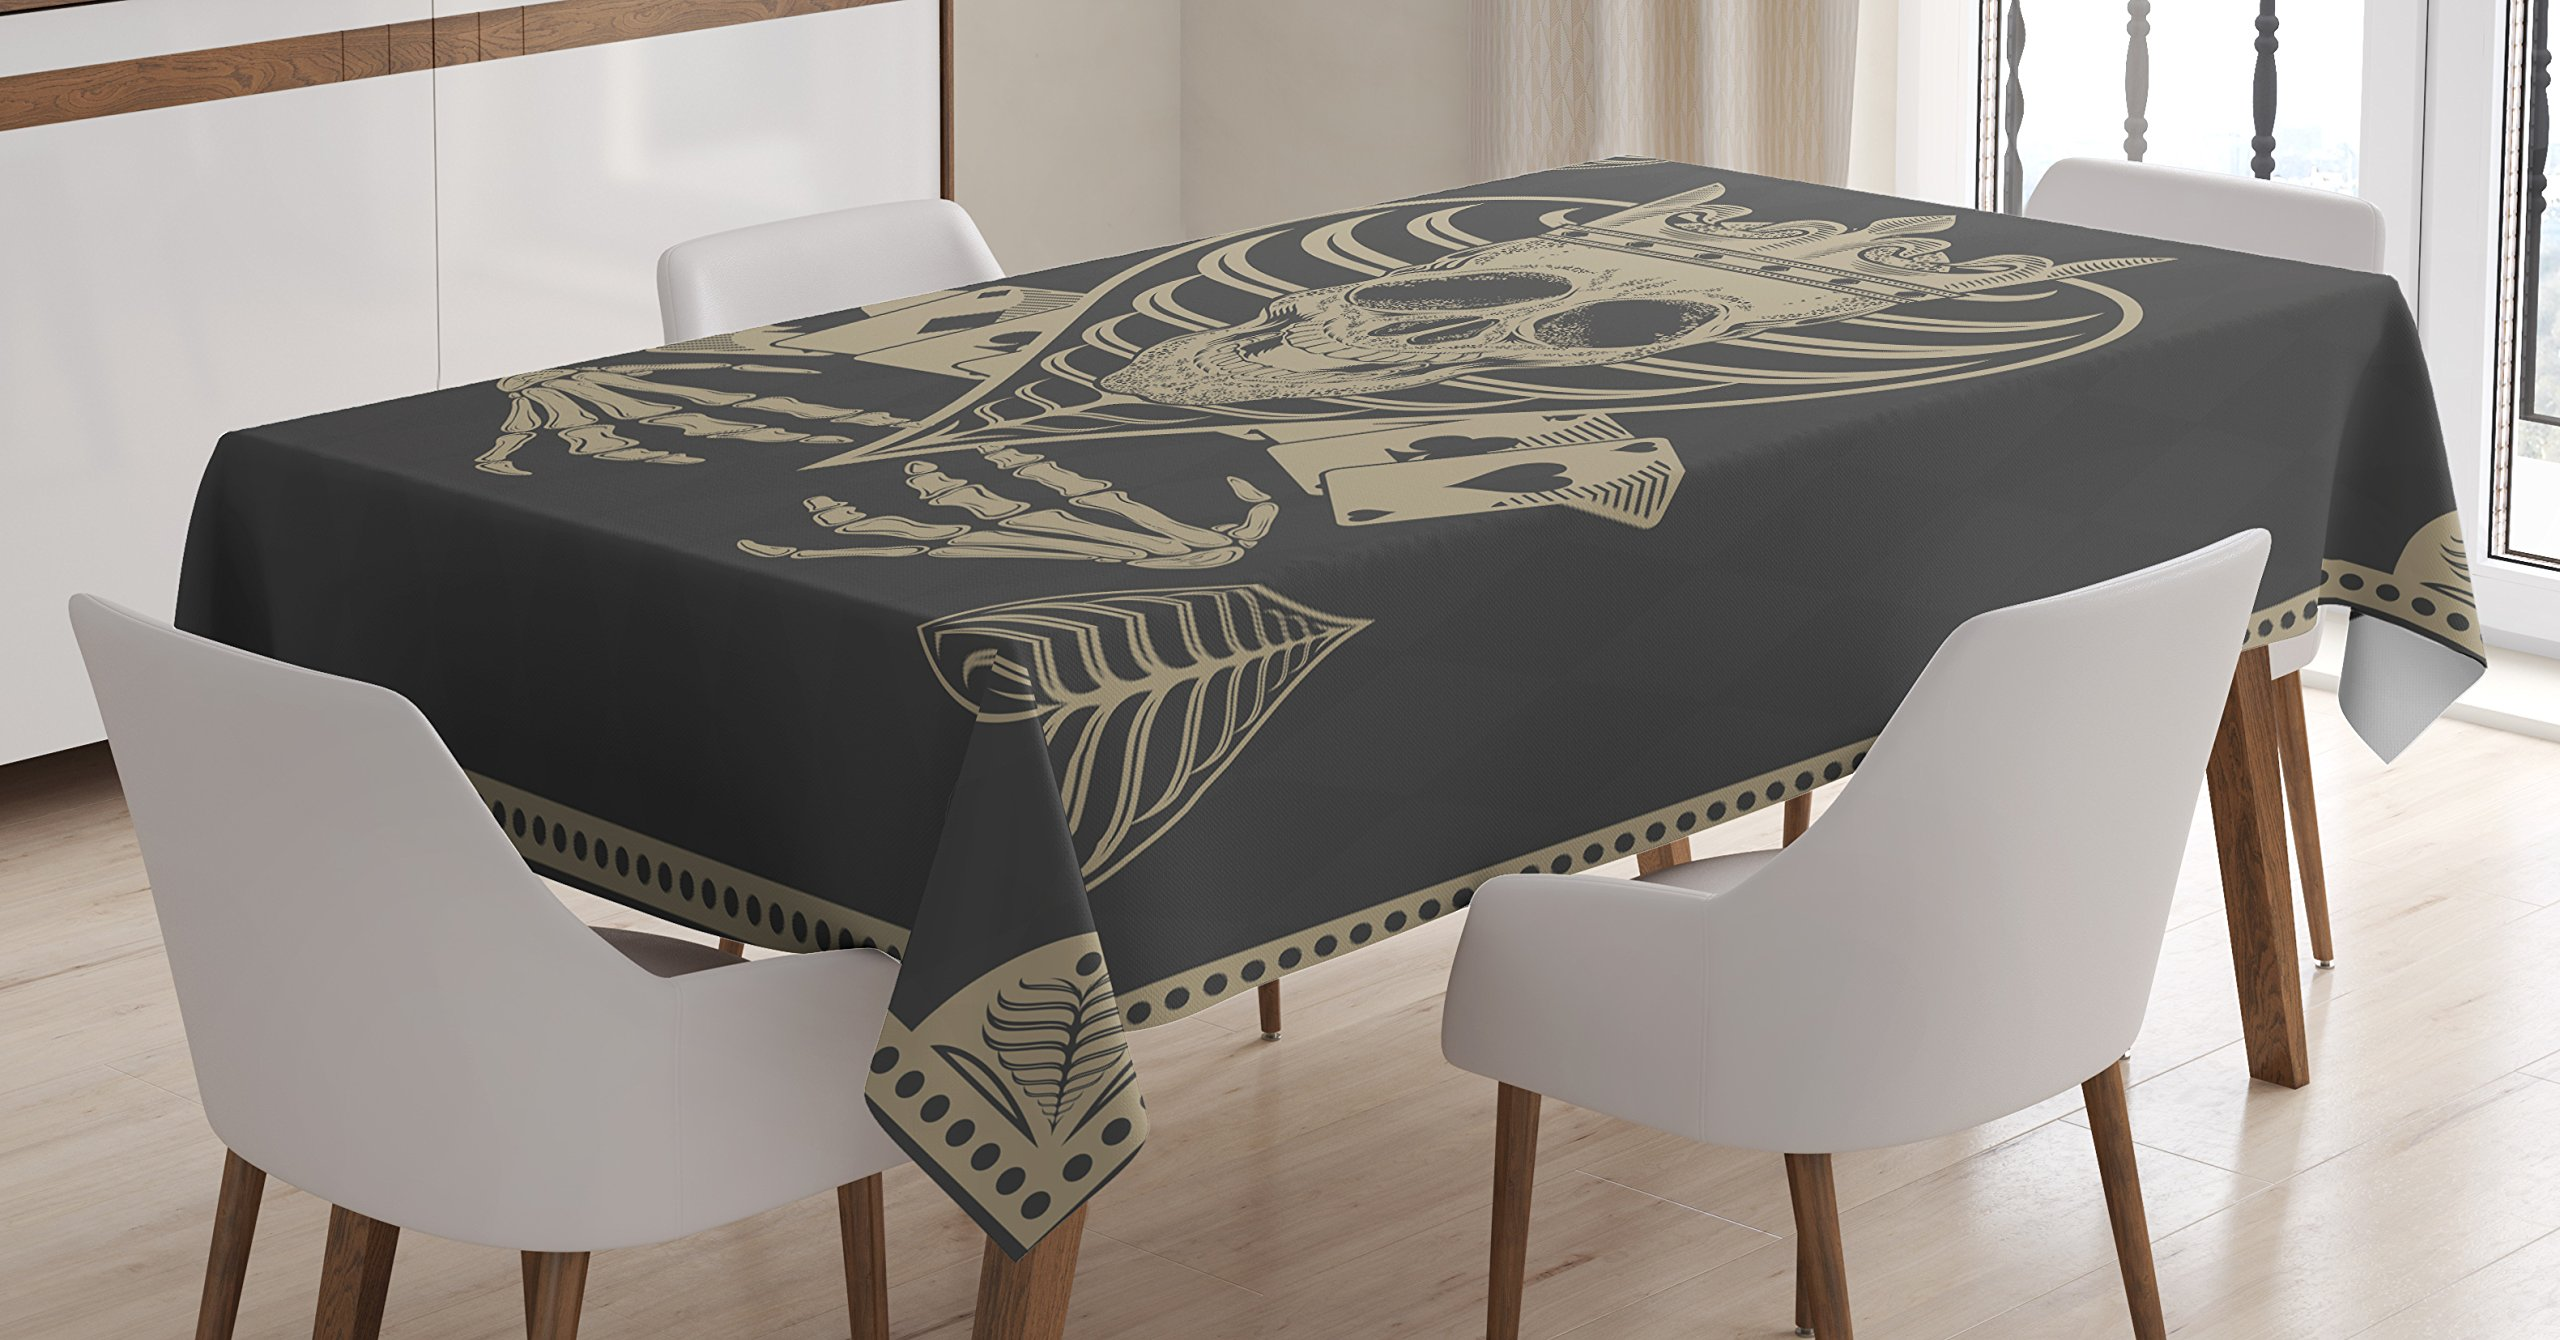 Ambesonne Skull Tablecloth, Vector Skull Poker Cards Play Game Scary Horror Image with Crown and Heart, Dining Room Kitchen Rectangular Table Cover, 60 W X 90 L inches, Dark Grey and Tan Beige